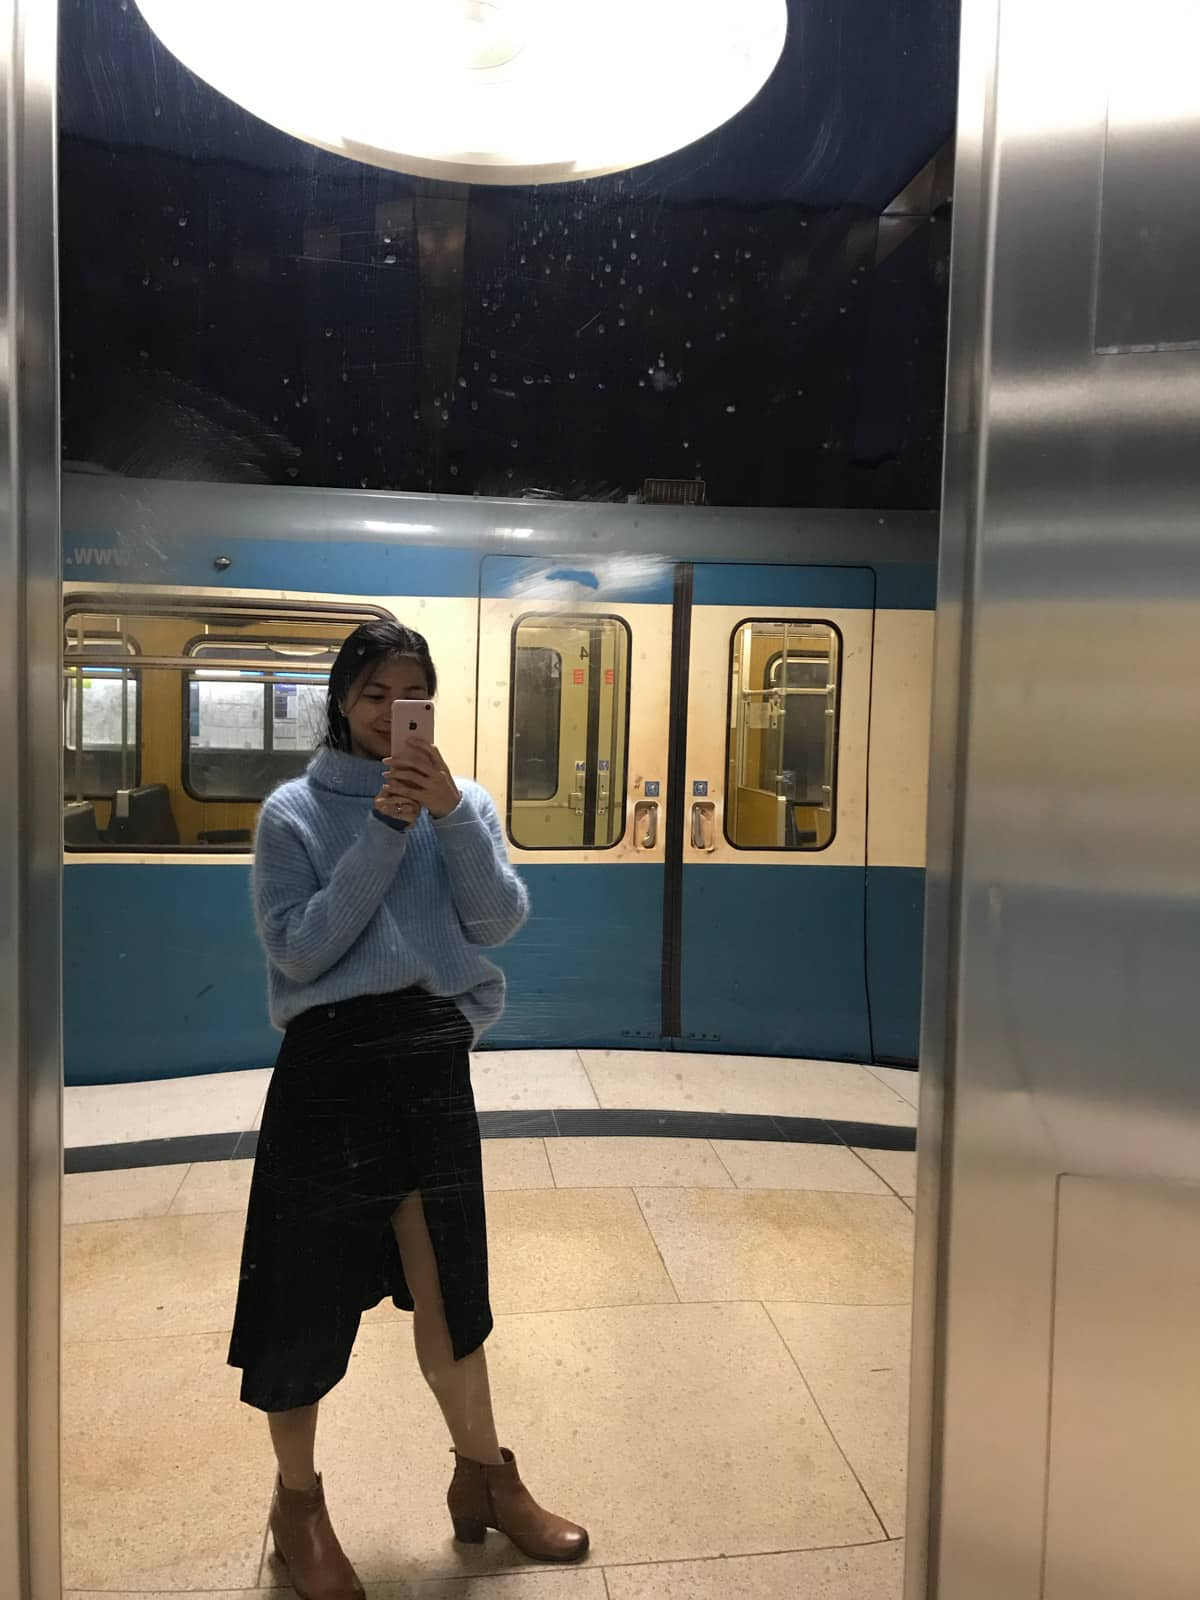 A woman in a blue sweater and a long black skirt, taking a selfie in a mirror at a train station. In the background is a blue train